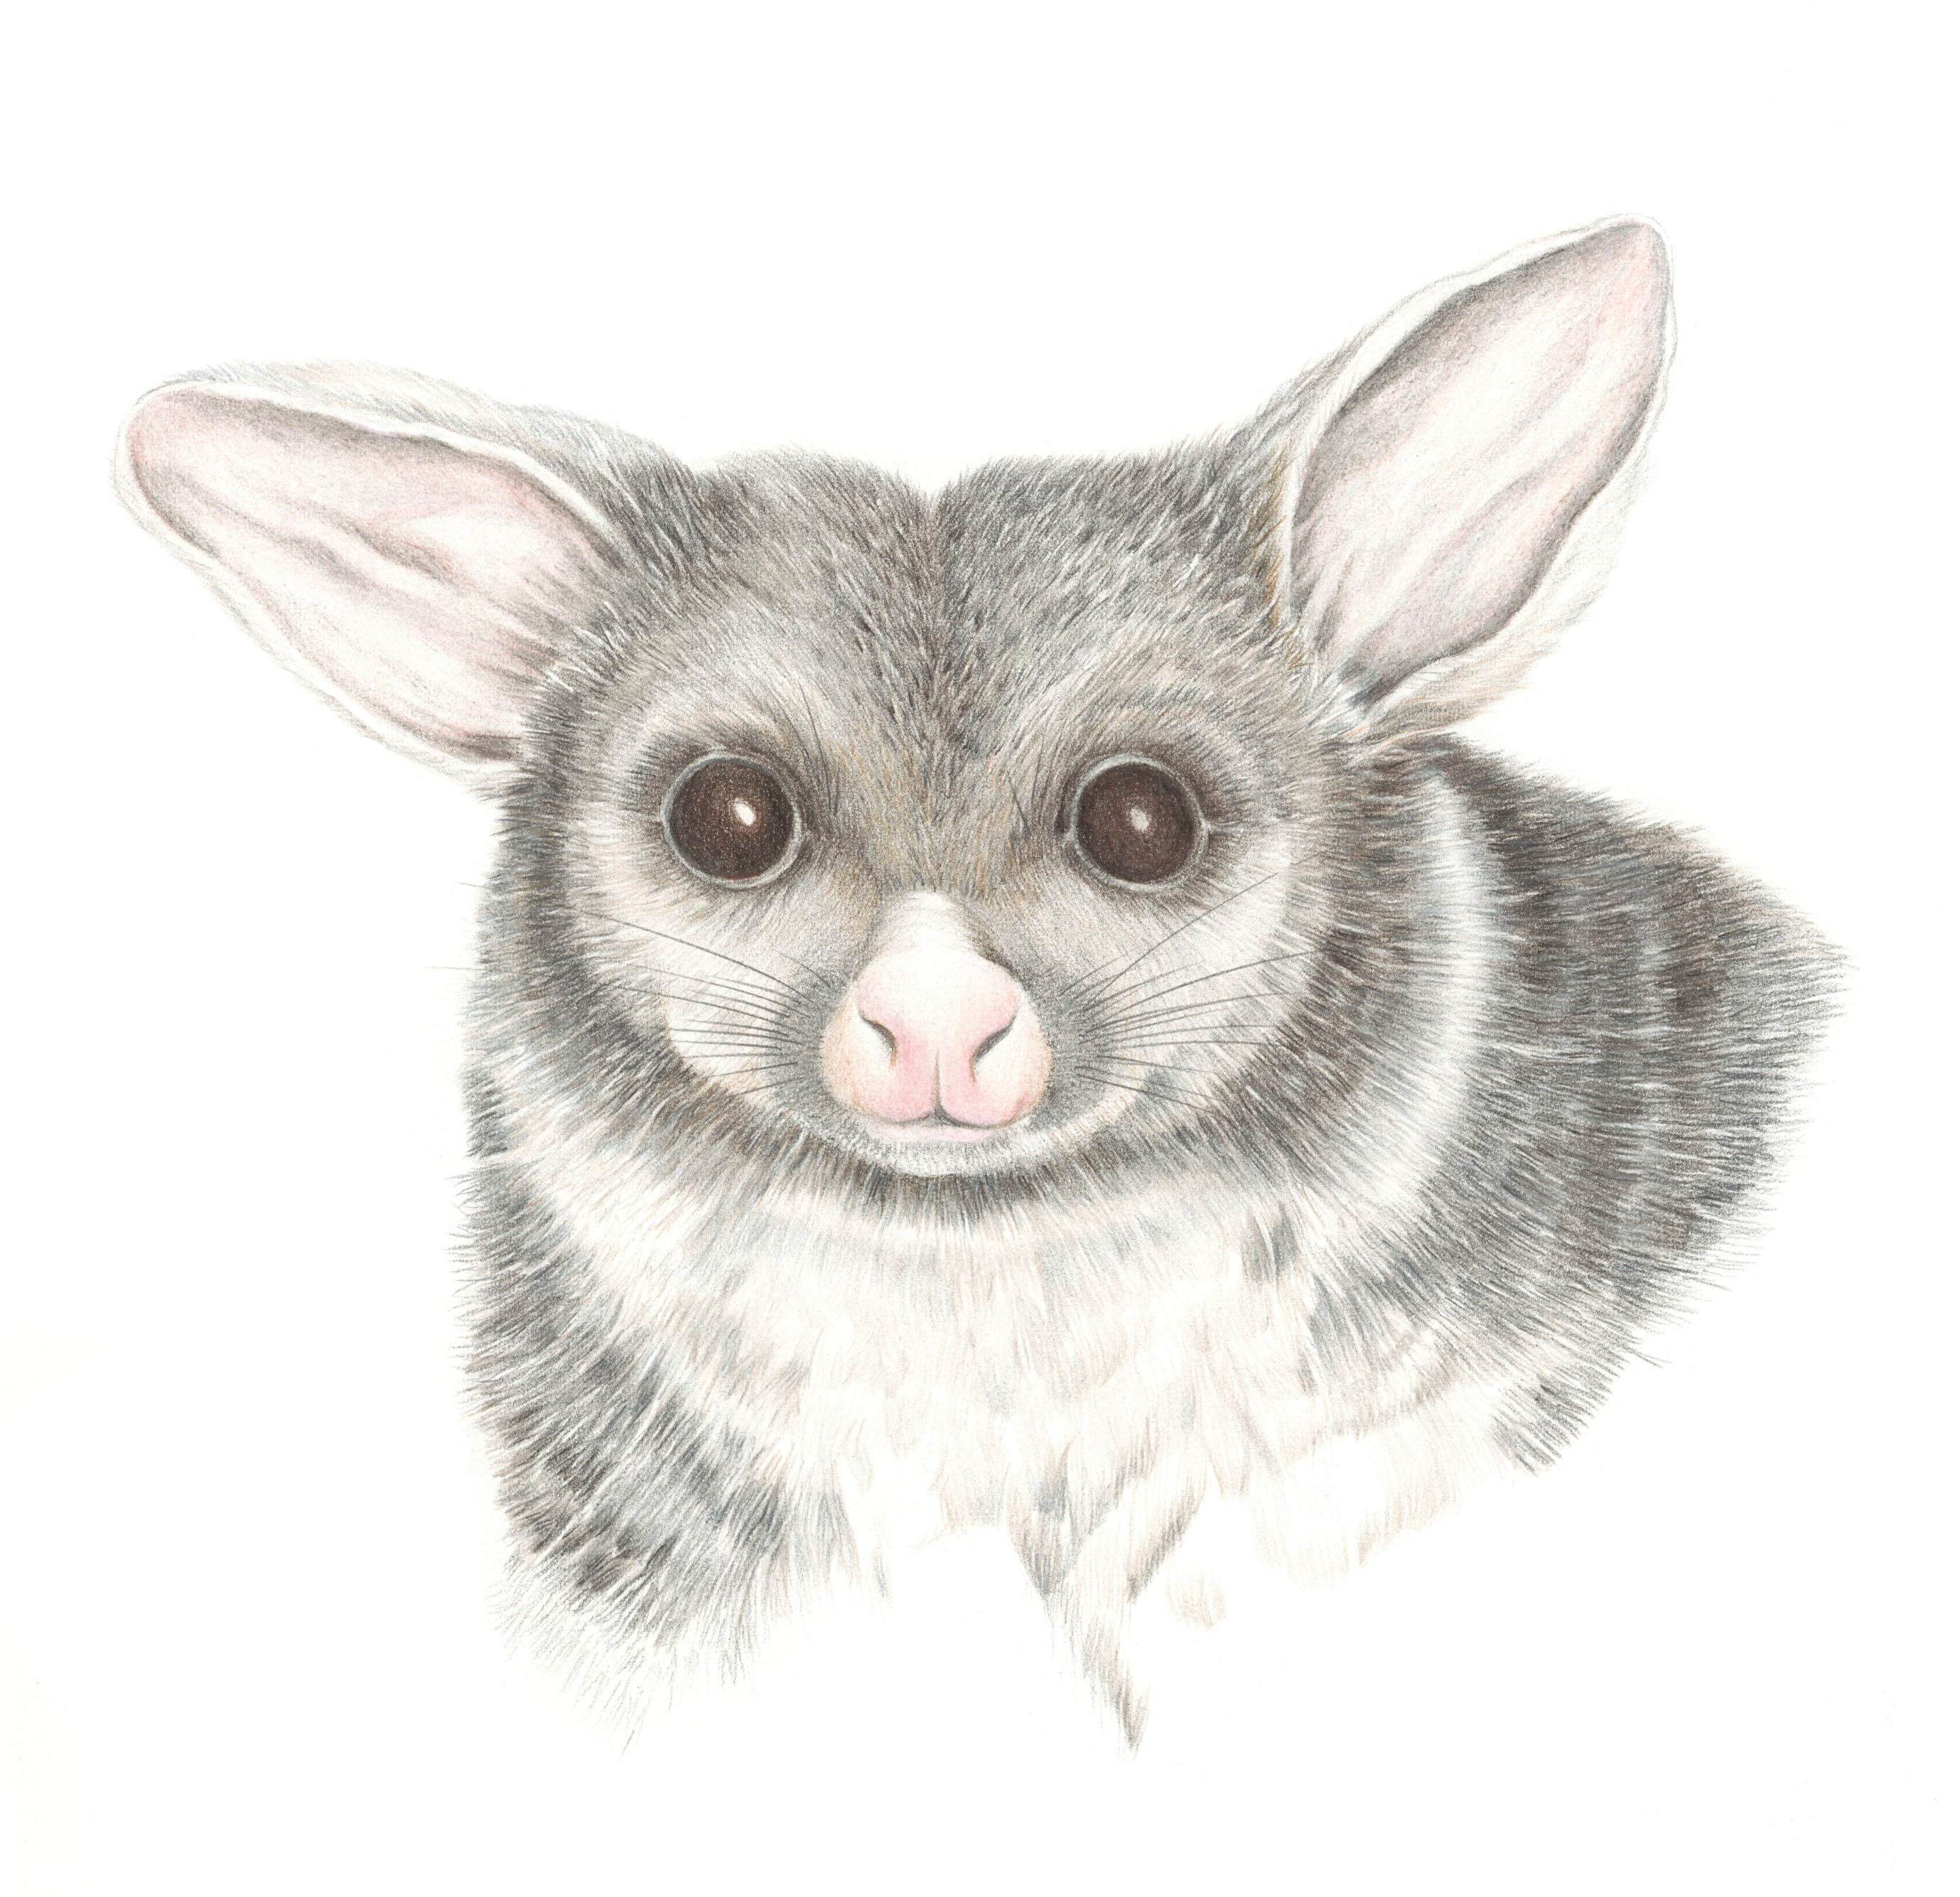 Possum print by Alison Dickin